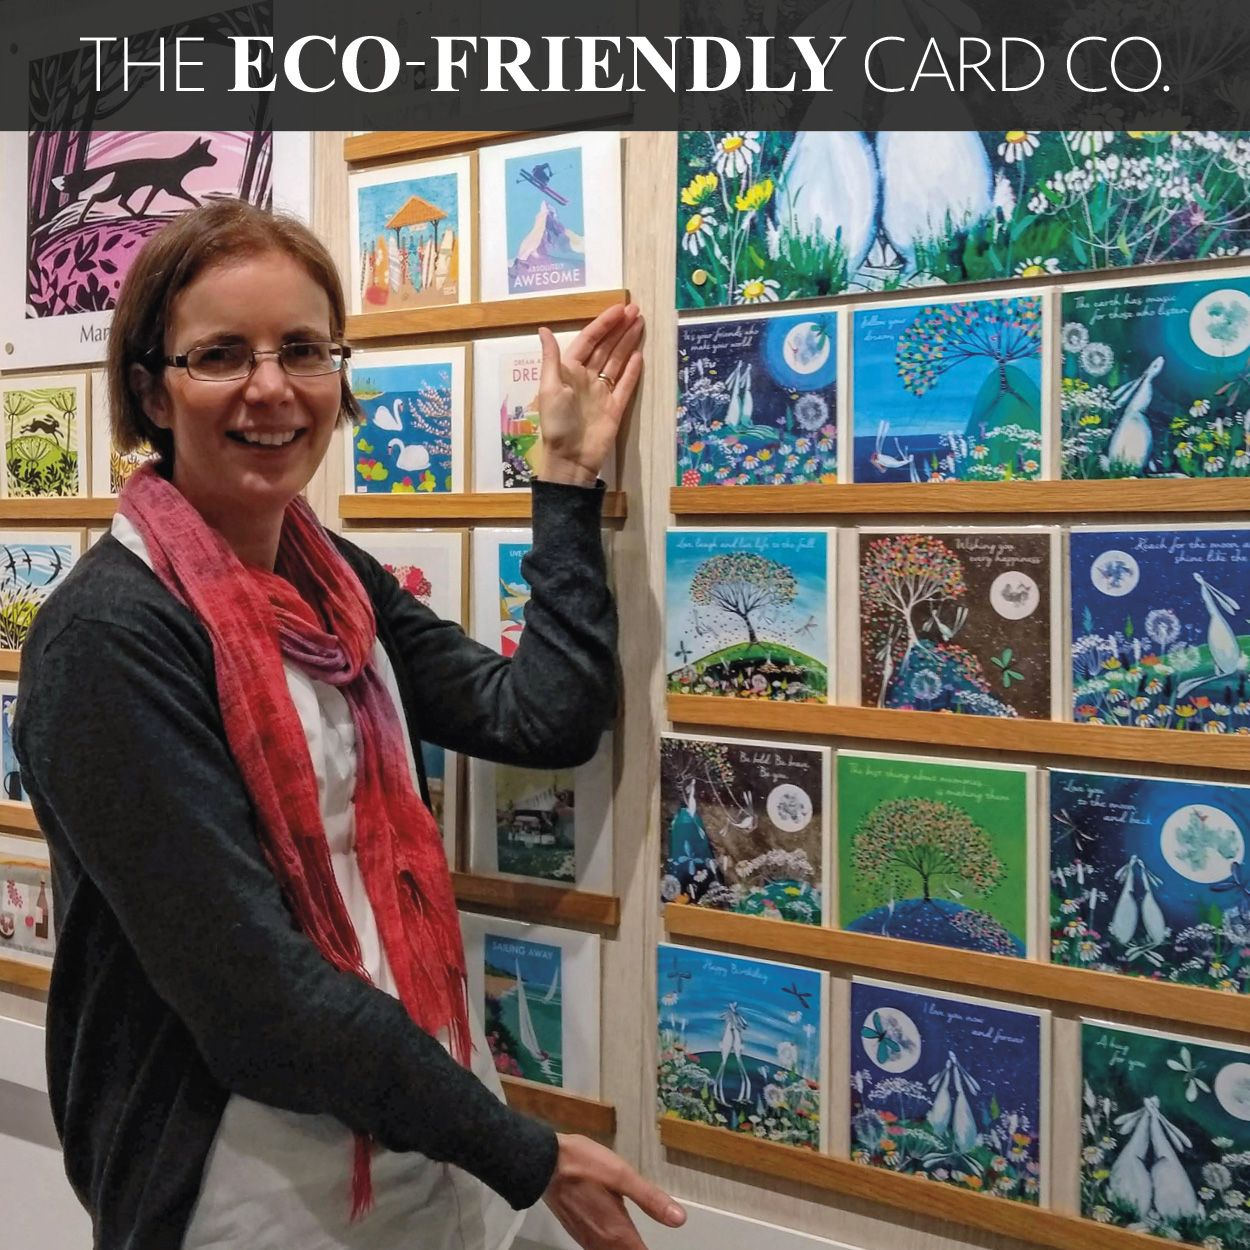 The Eco-friendly Card Co